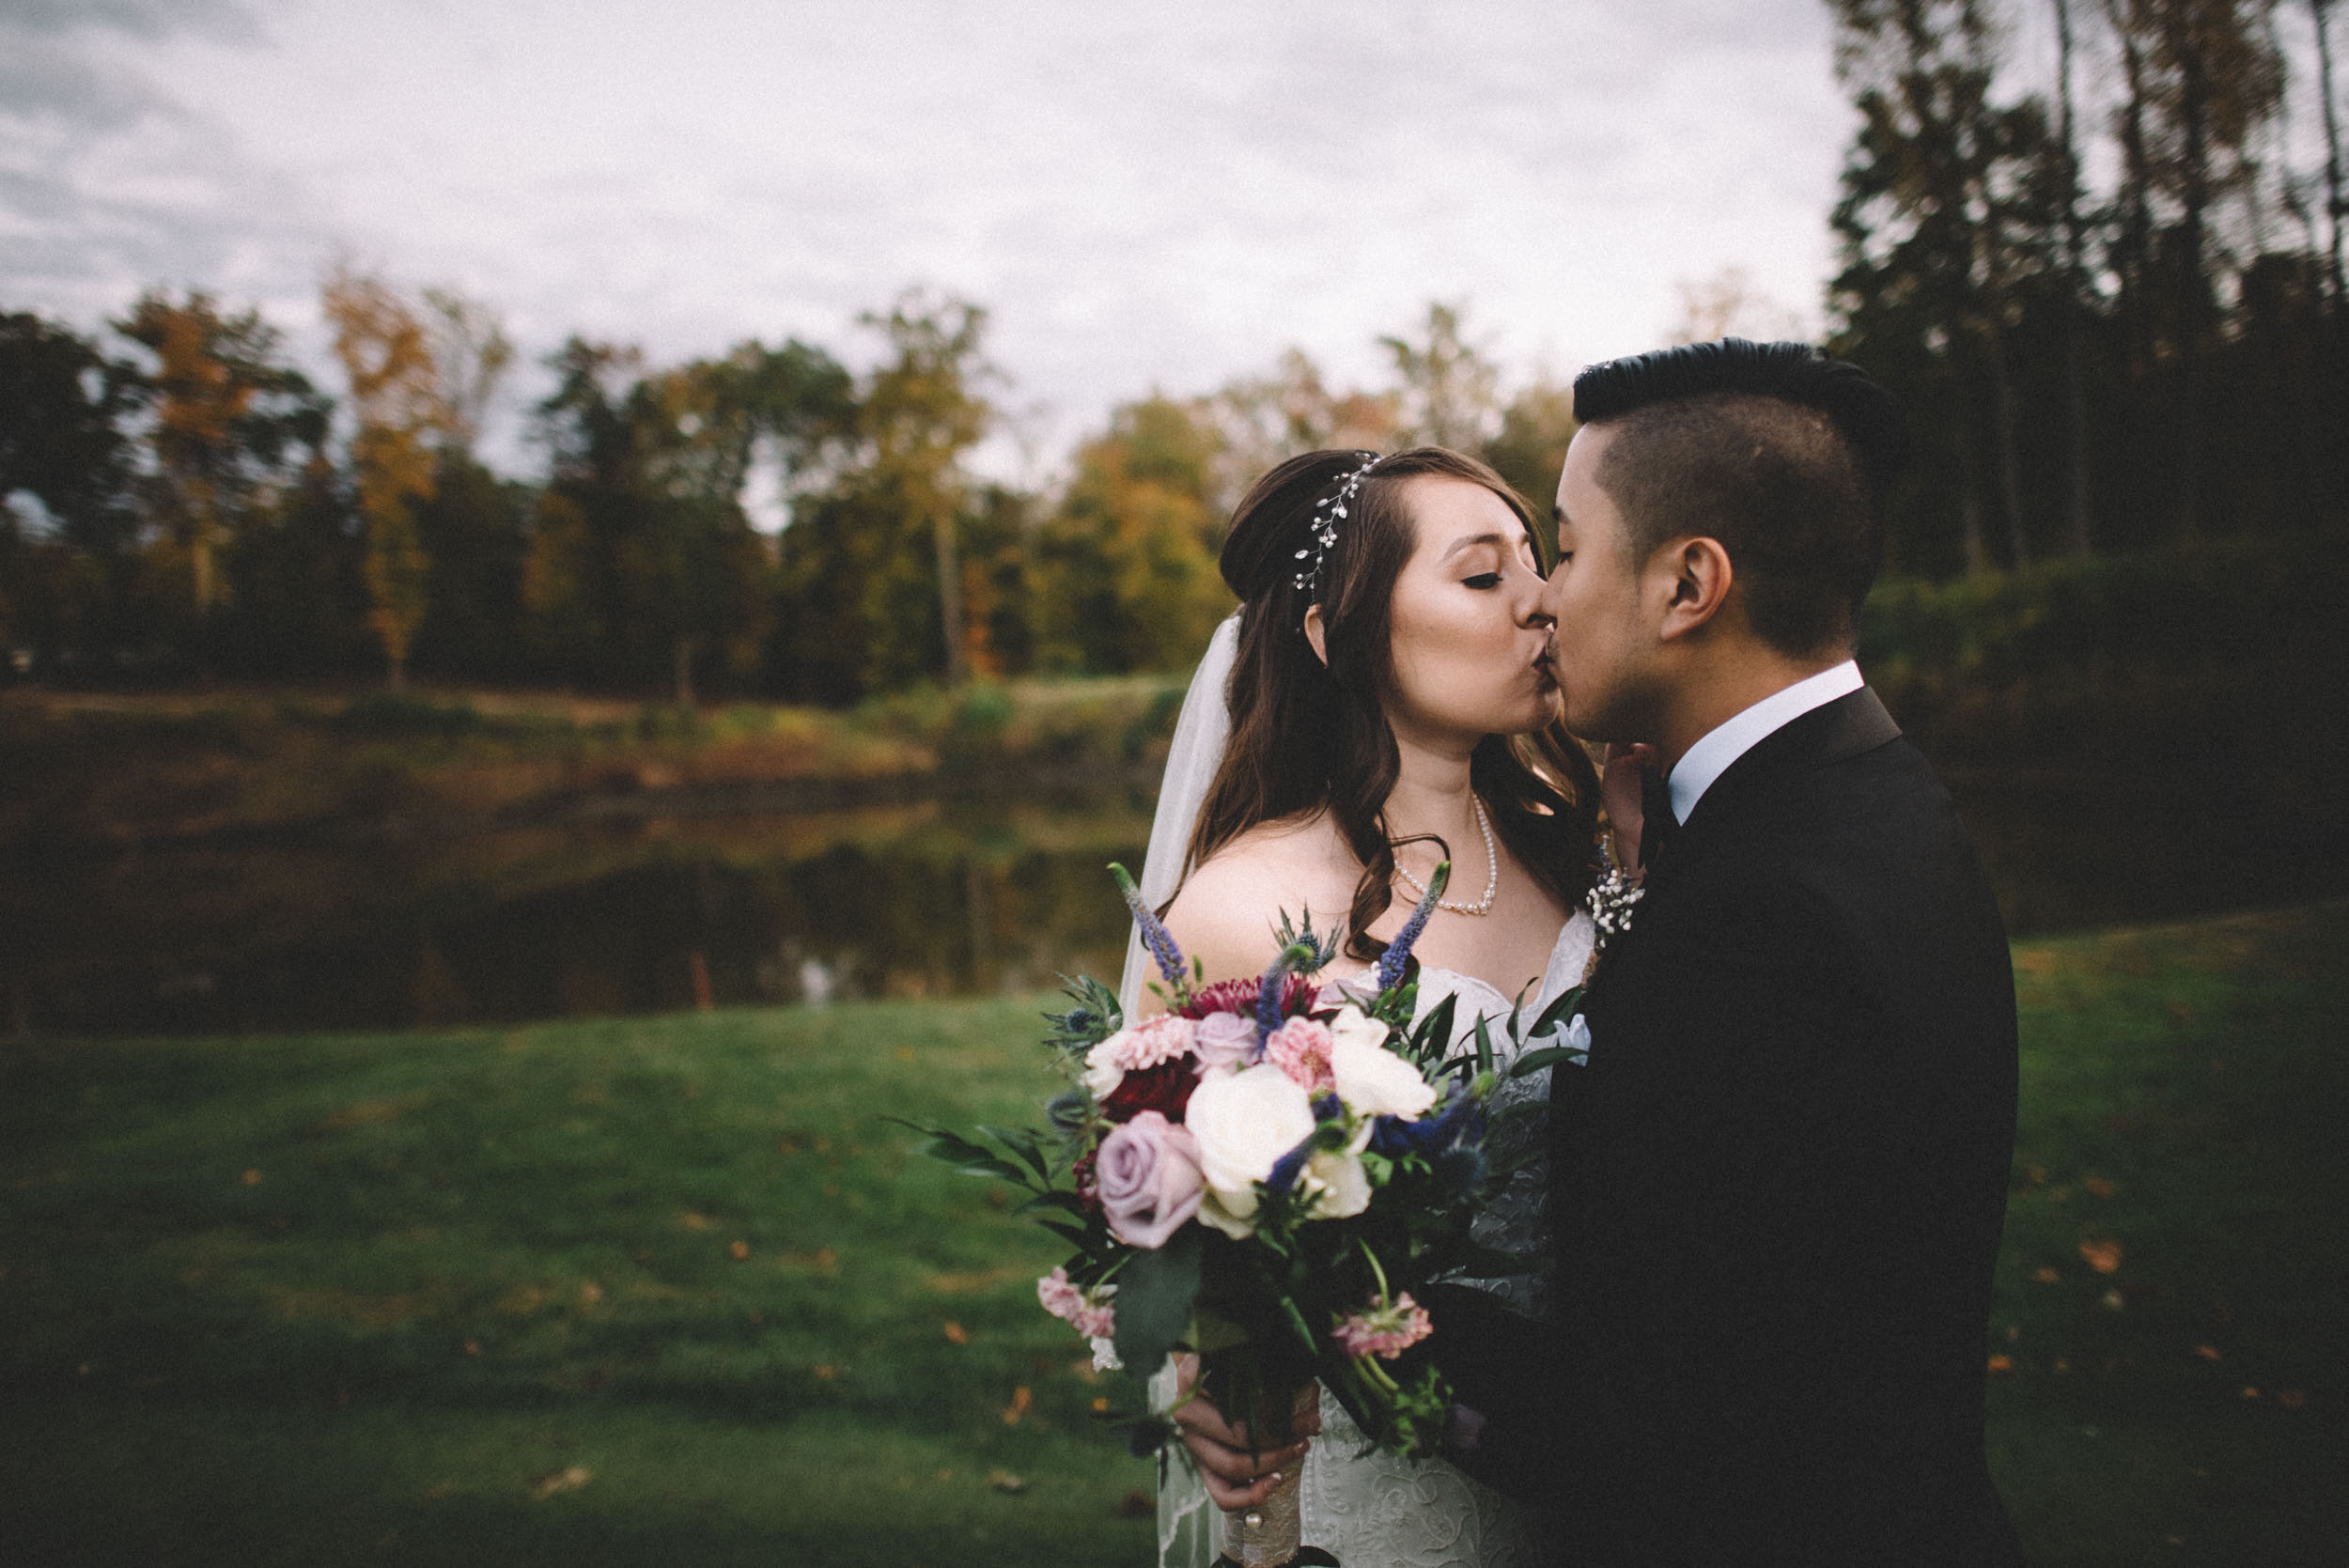 The bride and groom share a kiss on their wedding day.